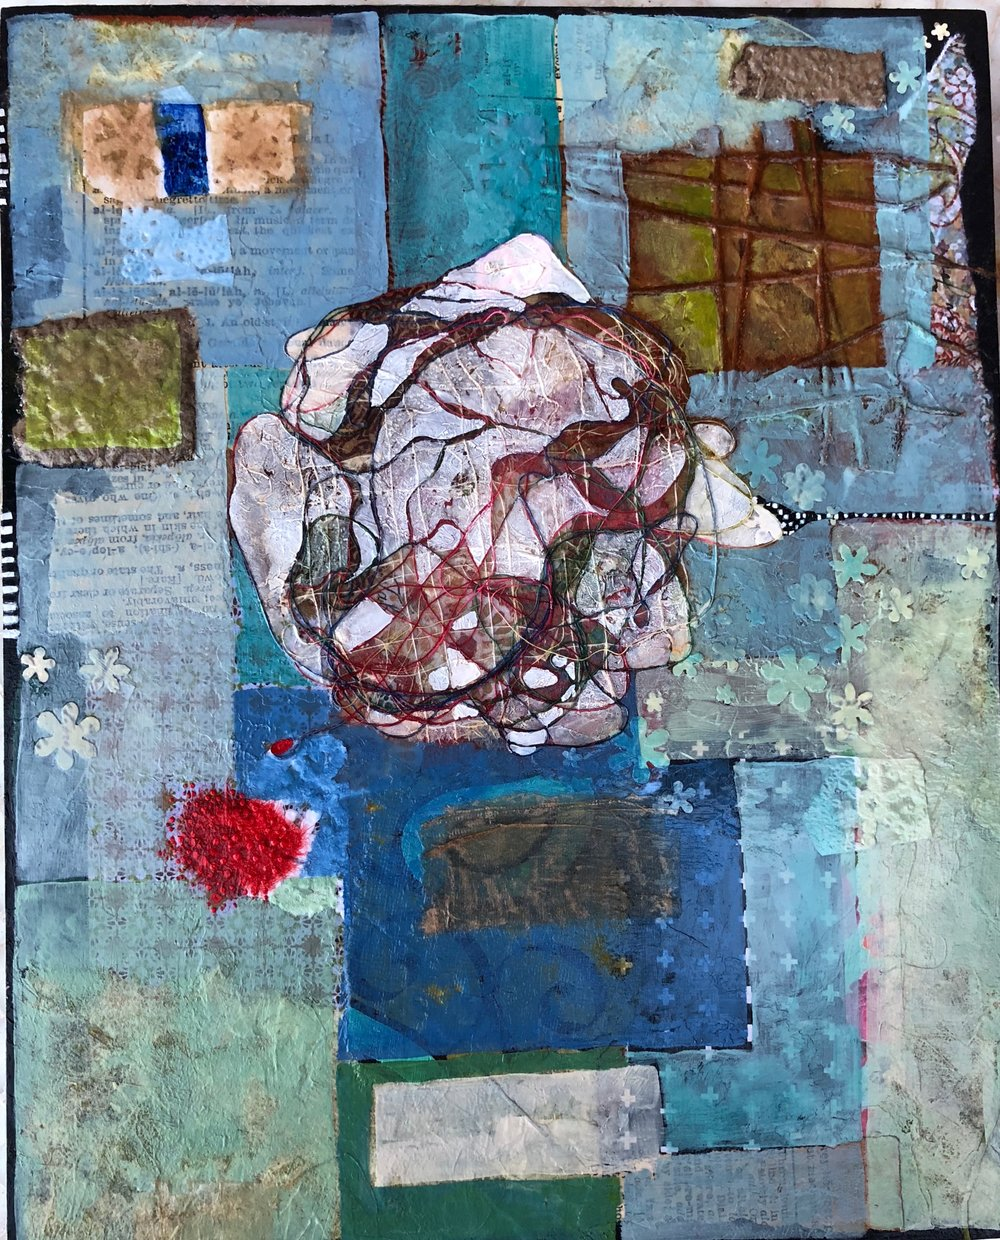 - acrylic, ink, threads, papers on cradled wood panel